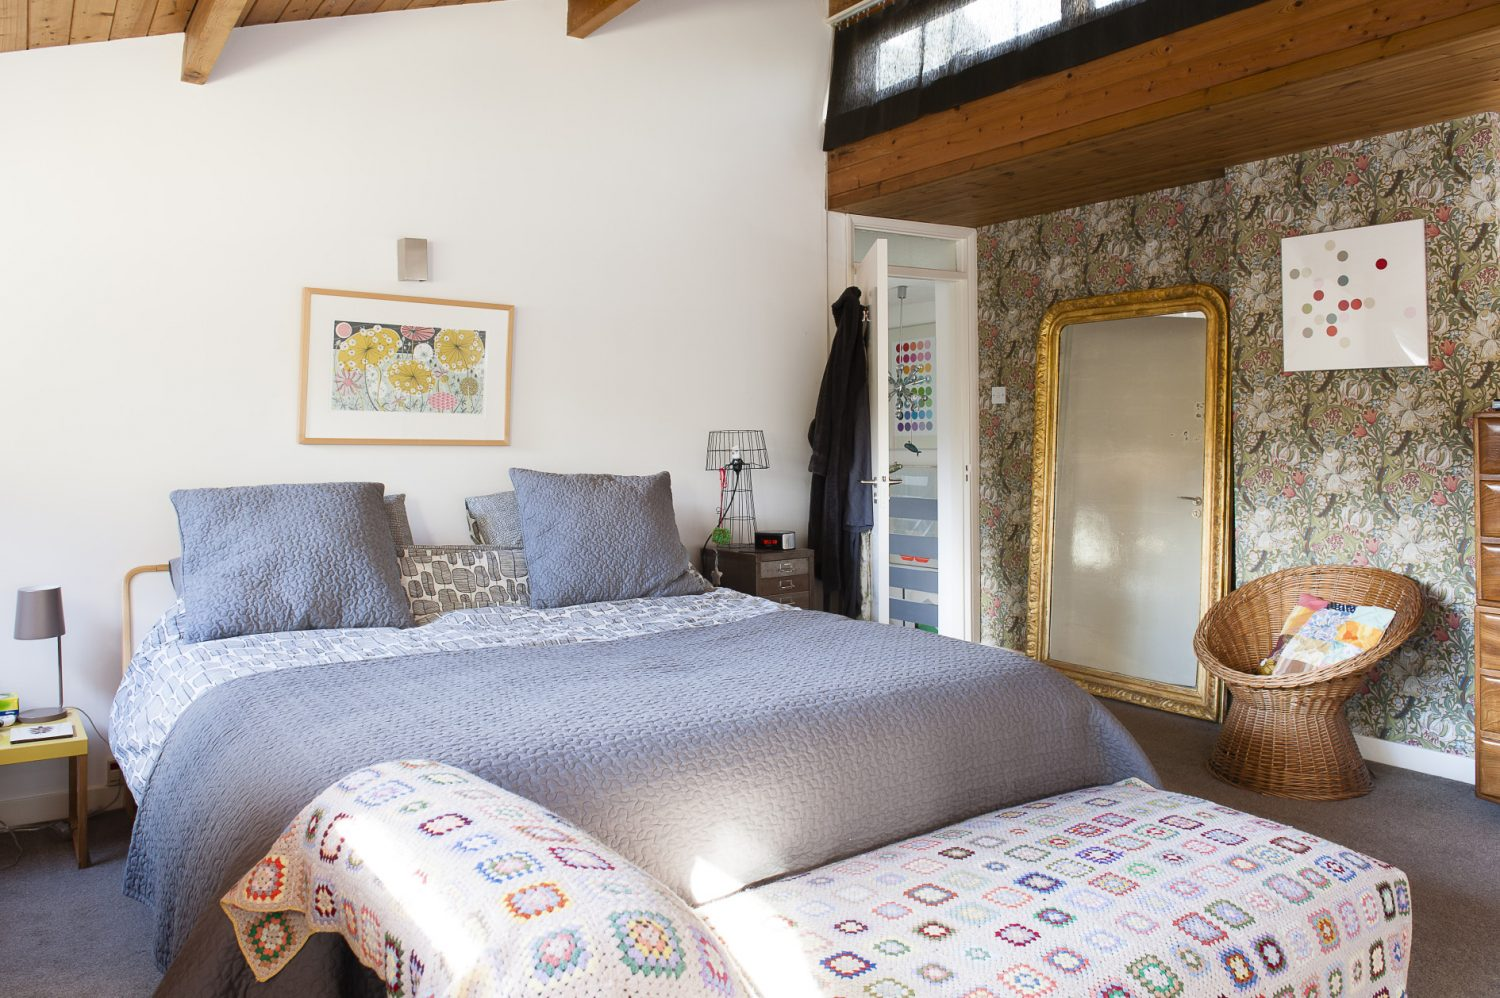 The master bedroom was once virtually all pine, three walls and soaring pitched ceiling. Sam covered one wall in a William Morris print, leaving the ceiling bare